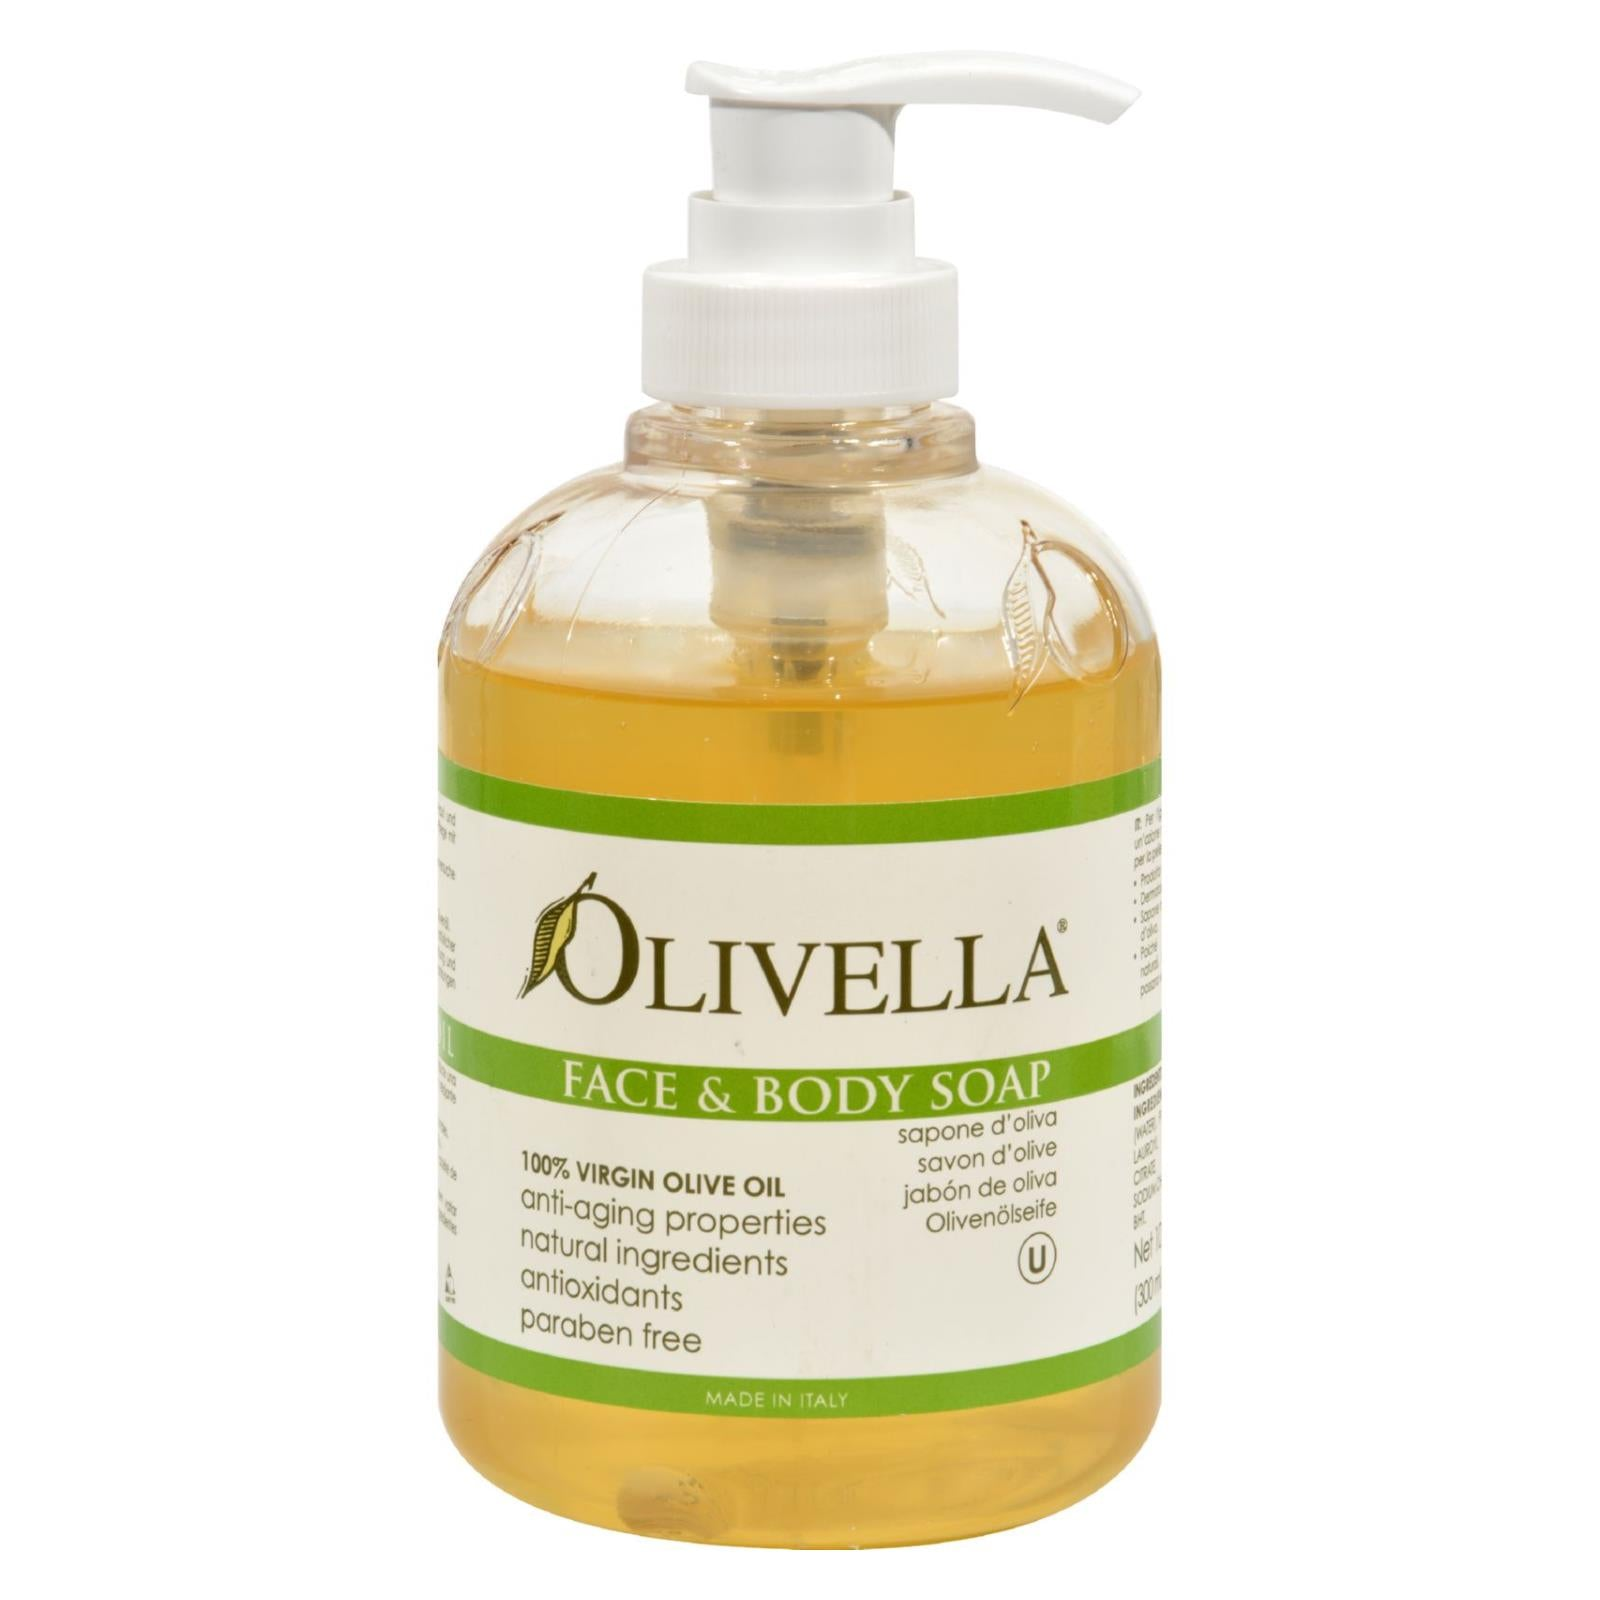 Buy Olivella Face and Body Soap - 10.14 fl oz - Cleansers from Veroeco.com